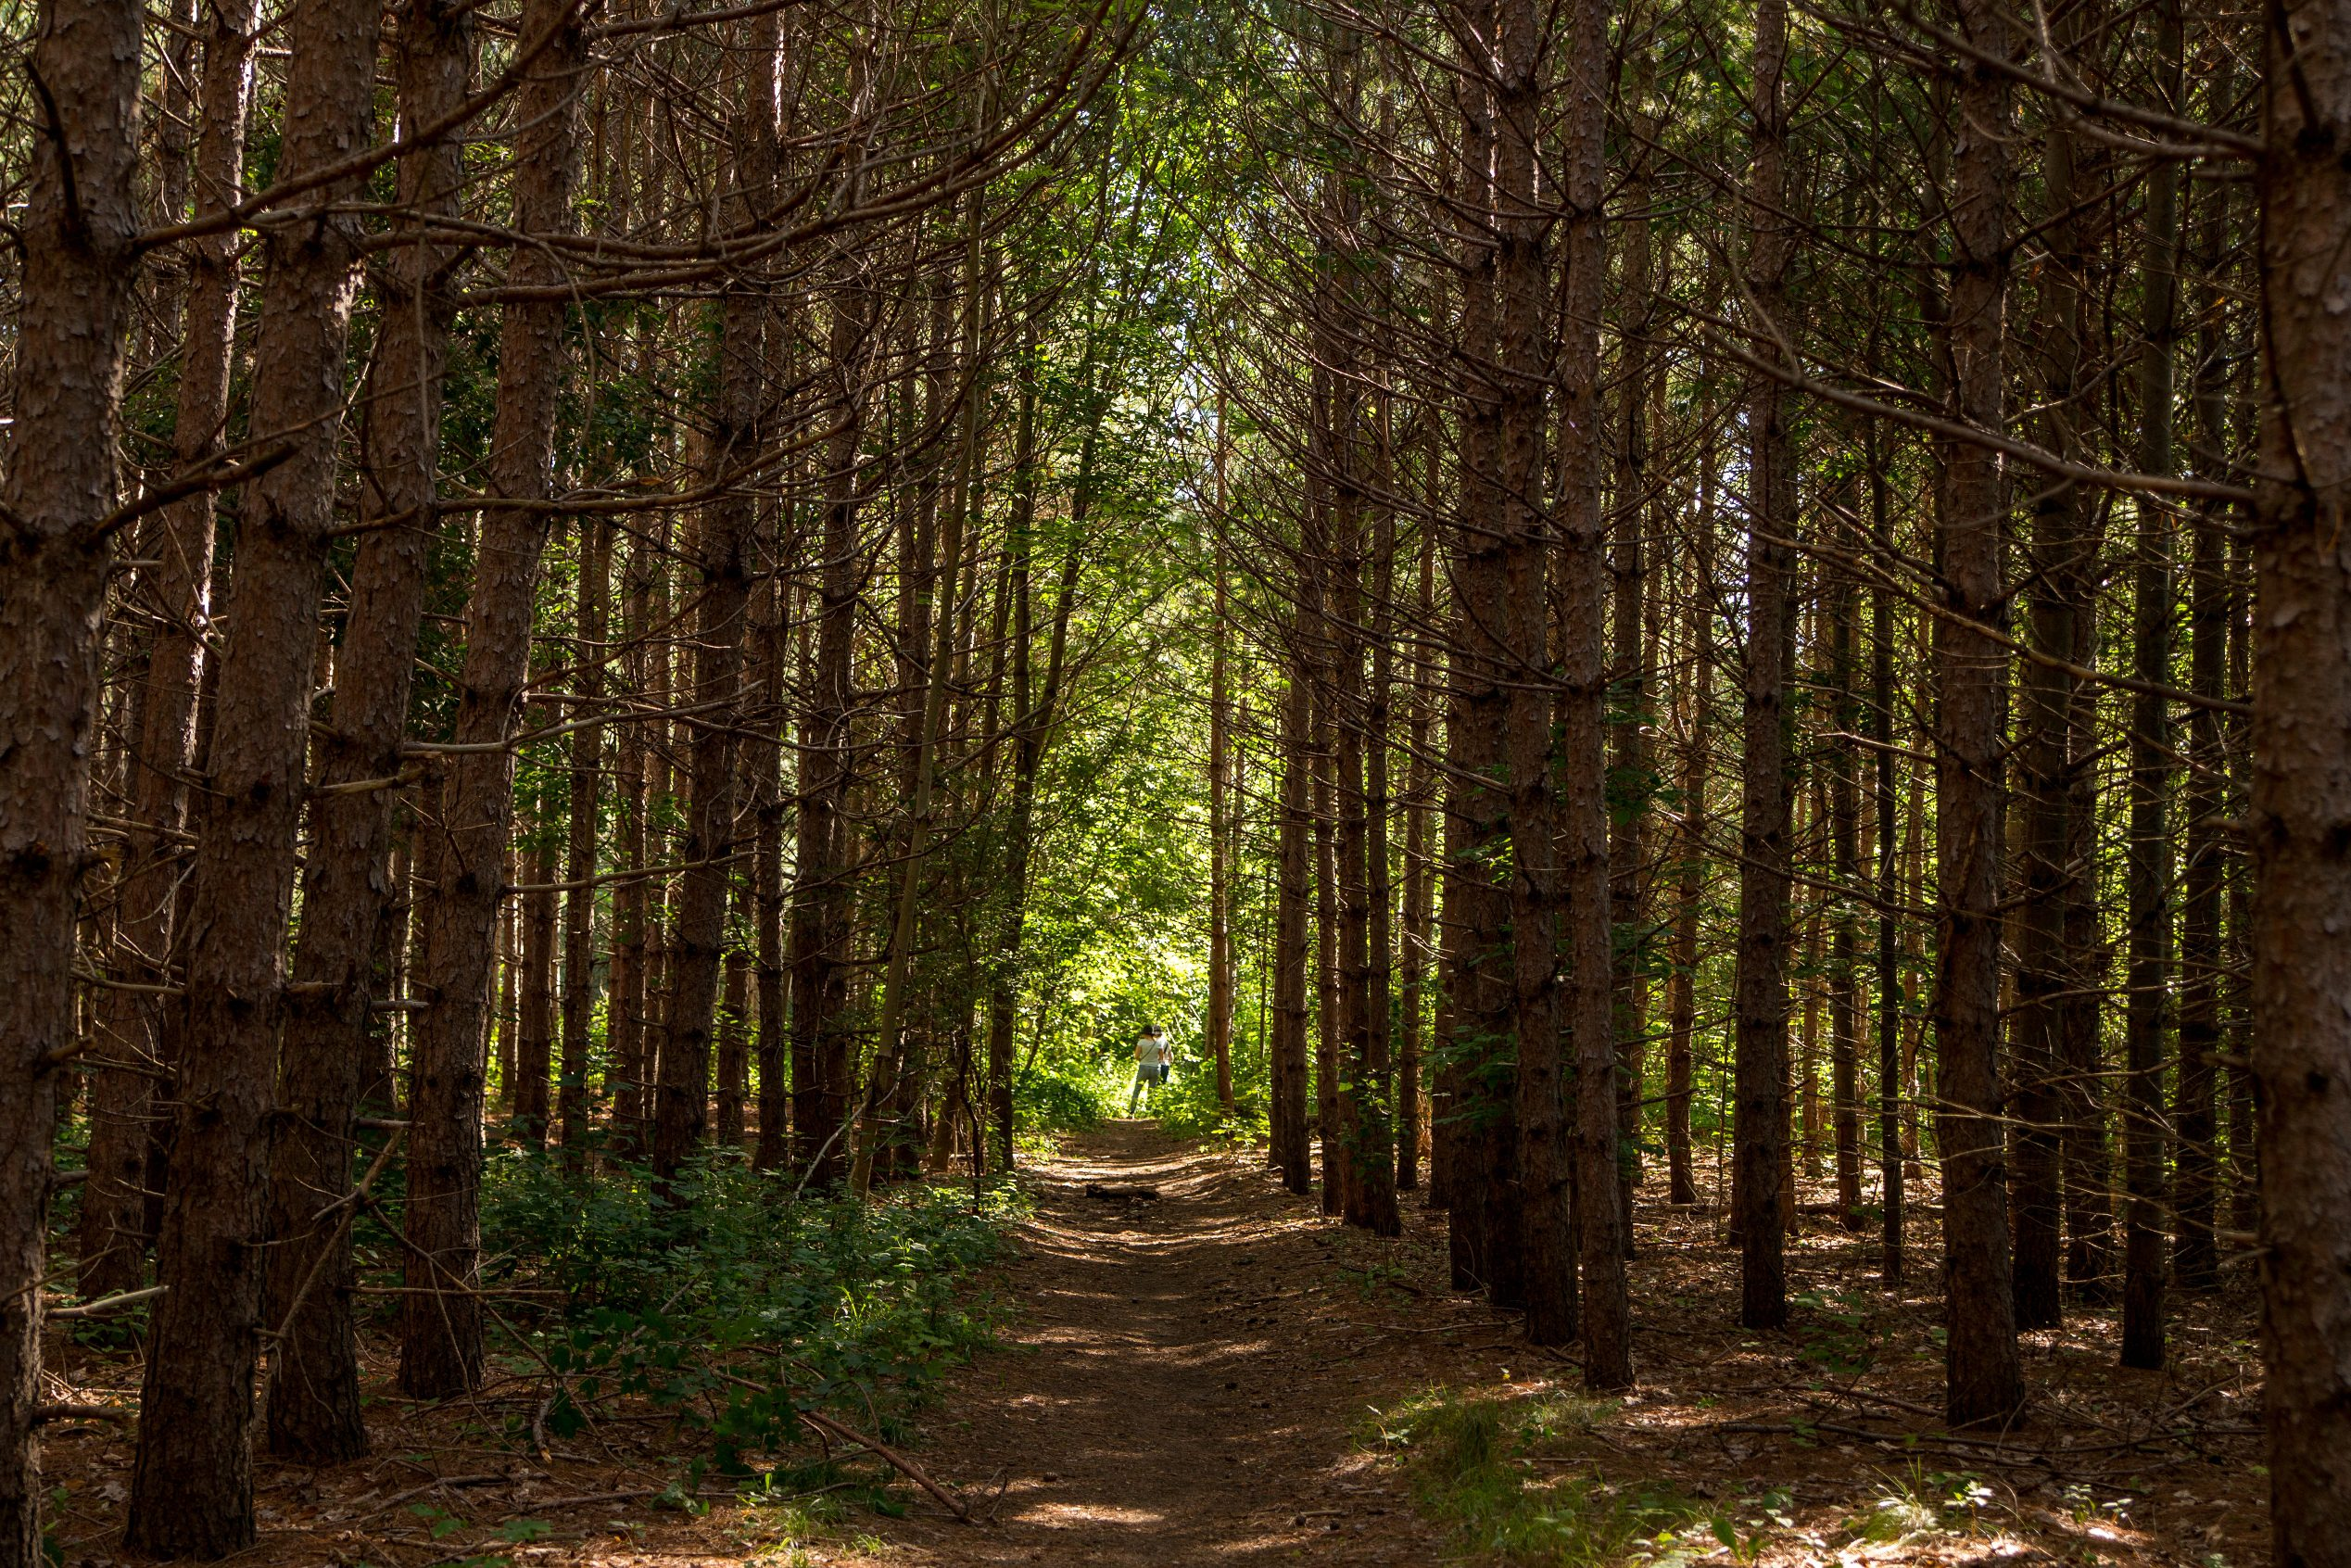 Highway 413 would pave over hiking and recreational trails along its path.